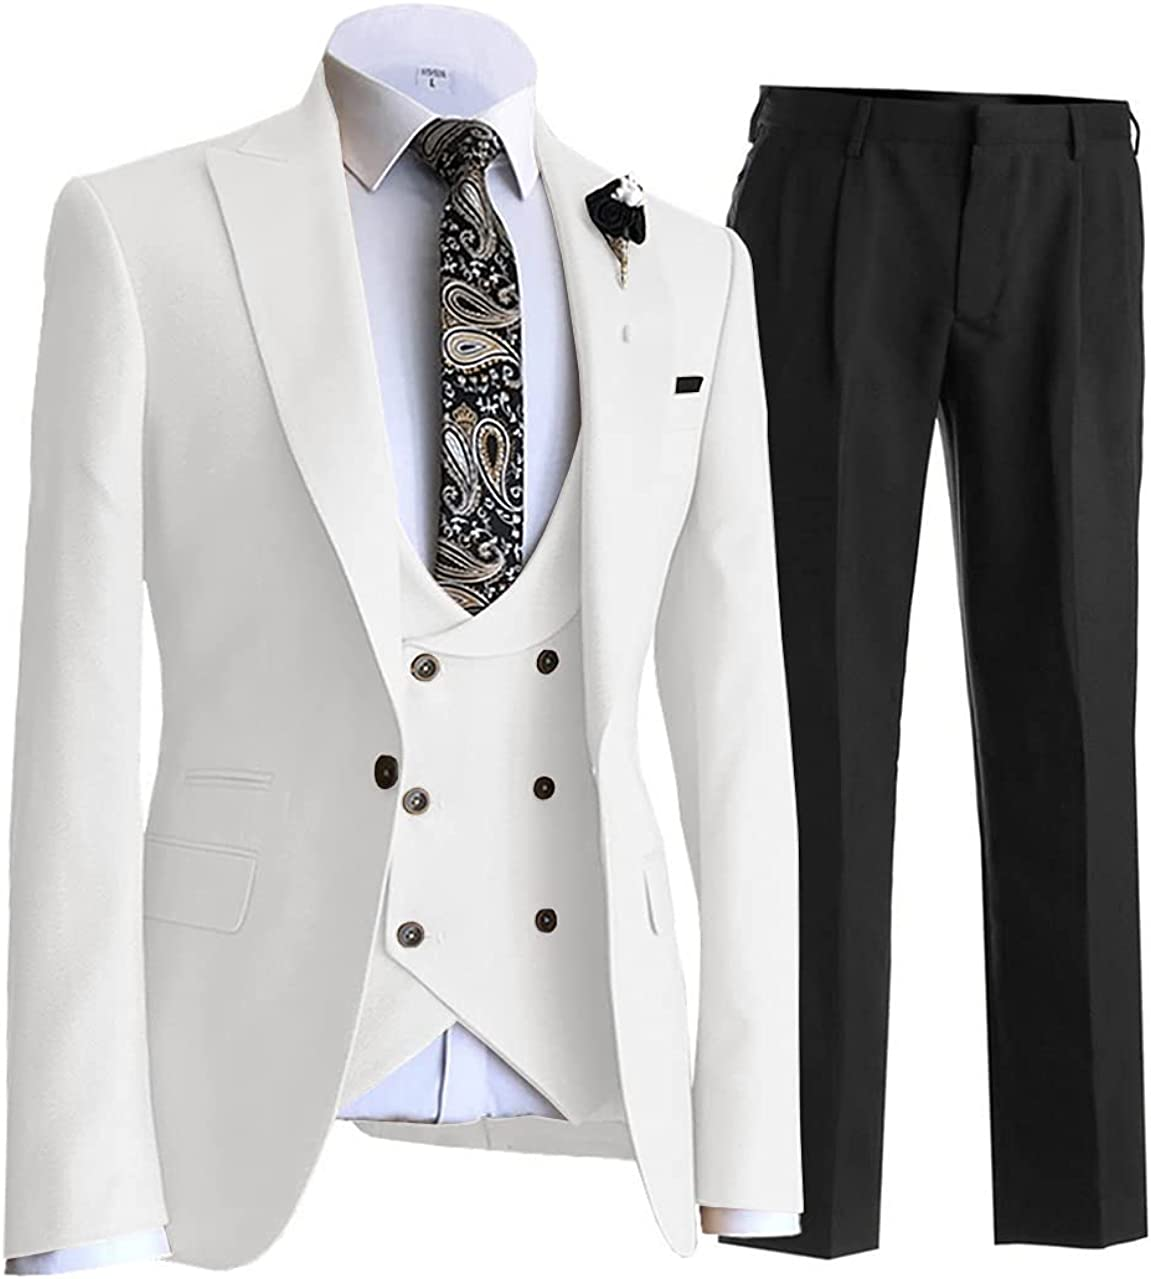 Aesido Men's Suits Regular Fit 3 Pieces Double Breasted Prom Tuxedos Wedding Grooms Jacket Blazer+Vest+Pants